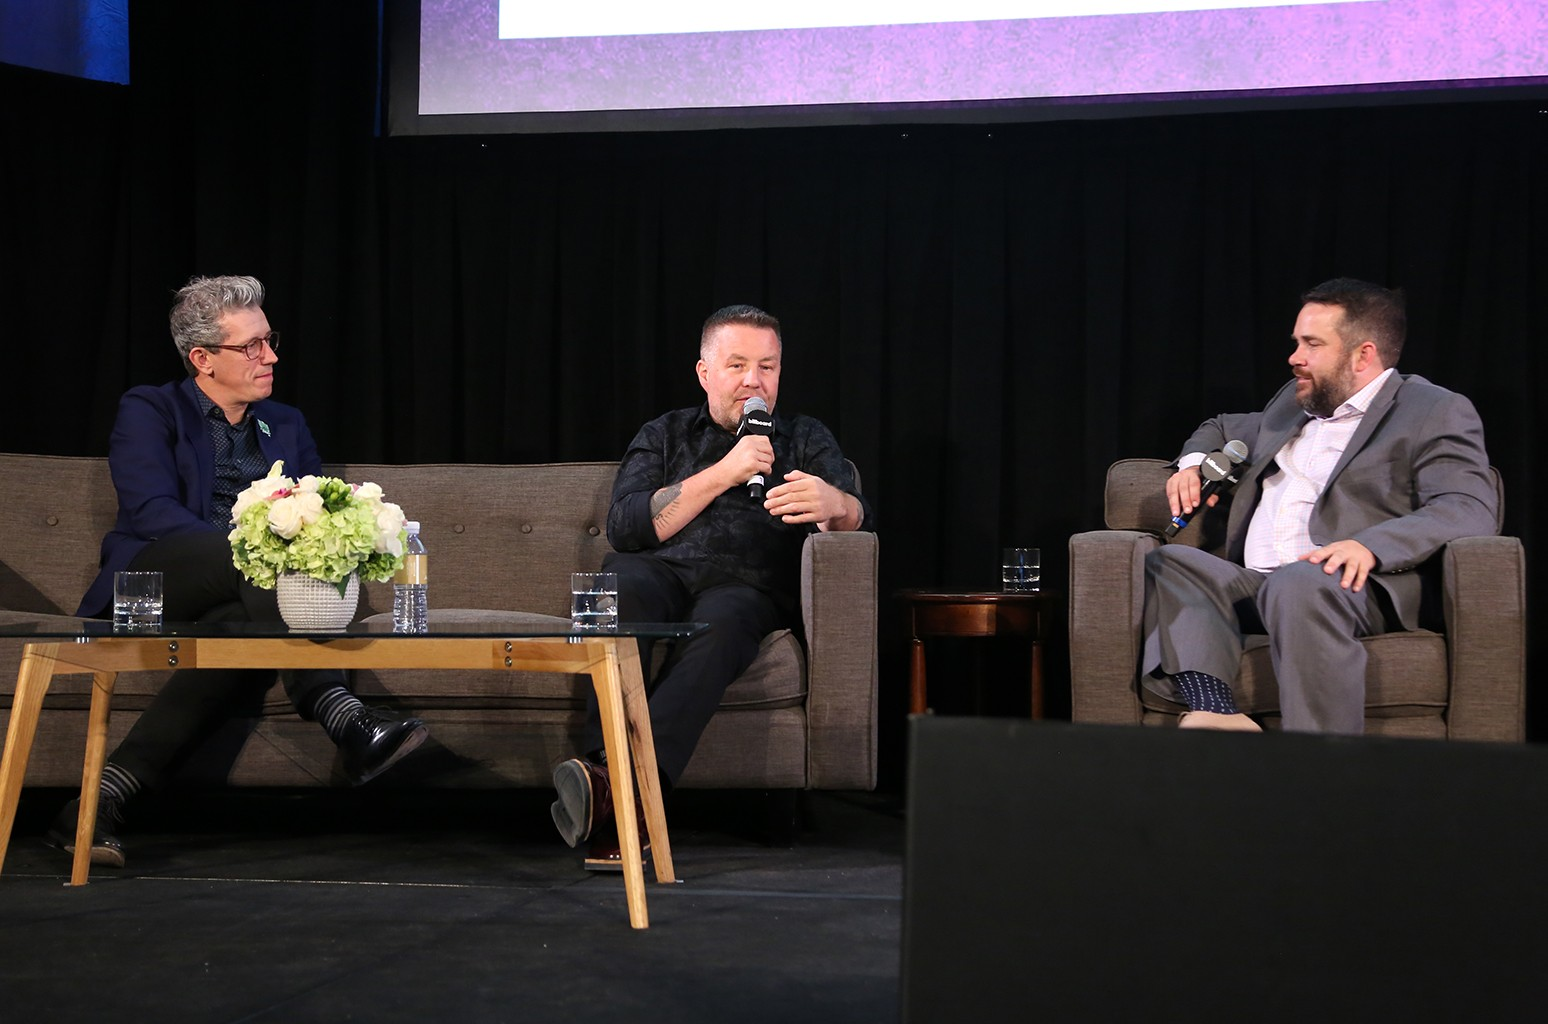 'The Business of Being the Dropkick Murphy's' panel during the 2018 Billboard Live Music Summit + Awards at the Montage Beverly Hills on Nov. 14, 2018 in Beverly Hills, Calif.